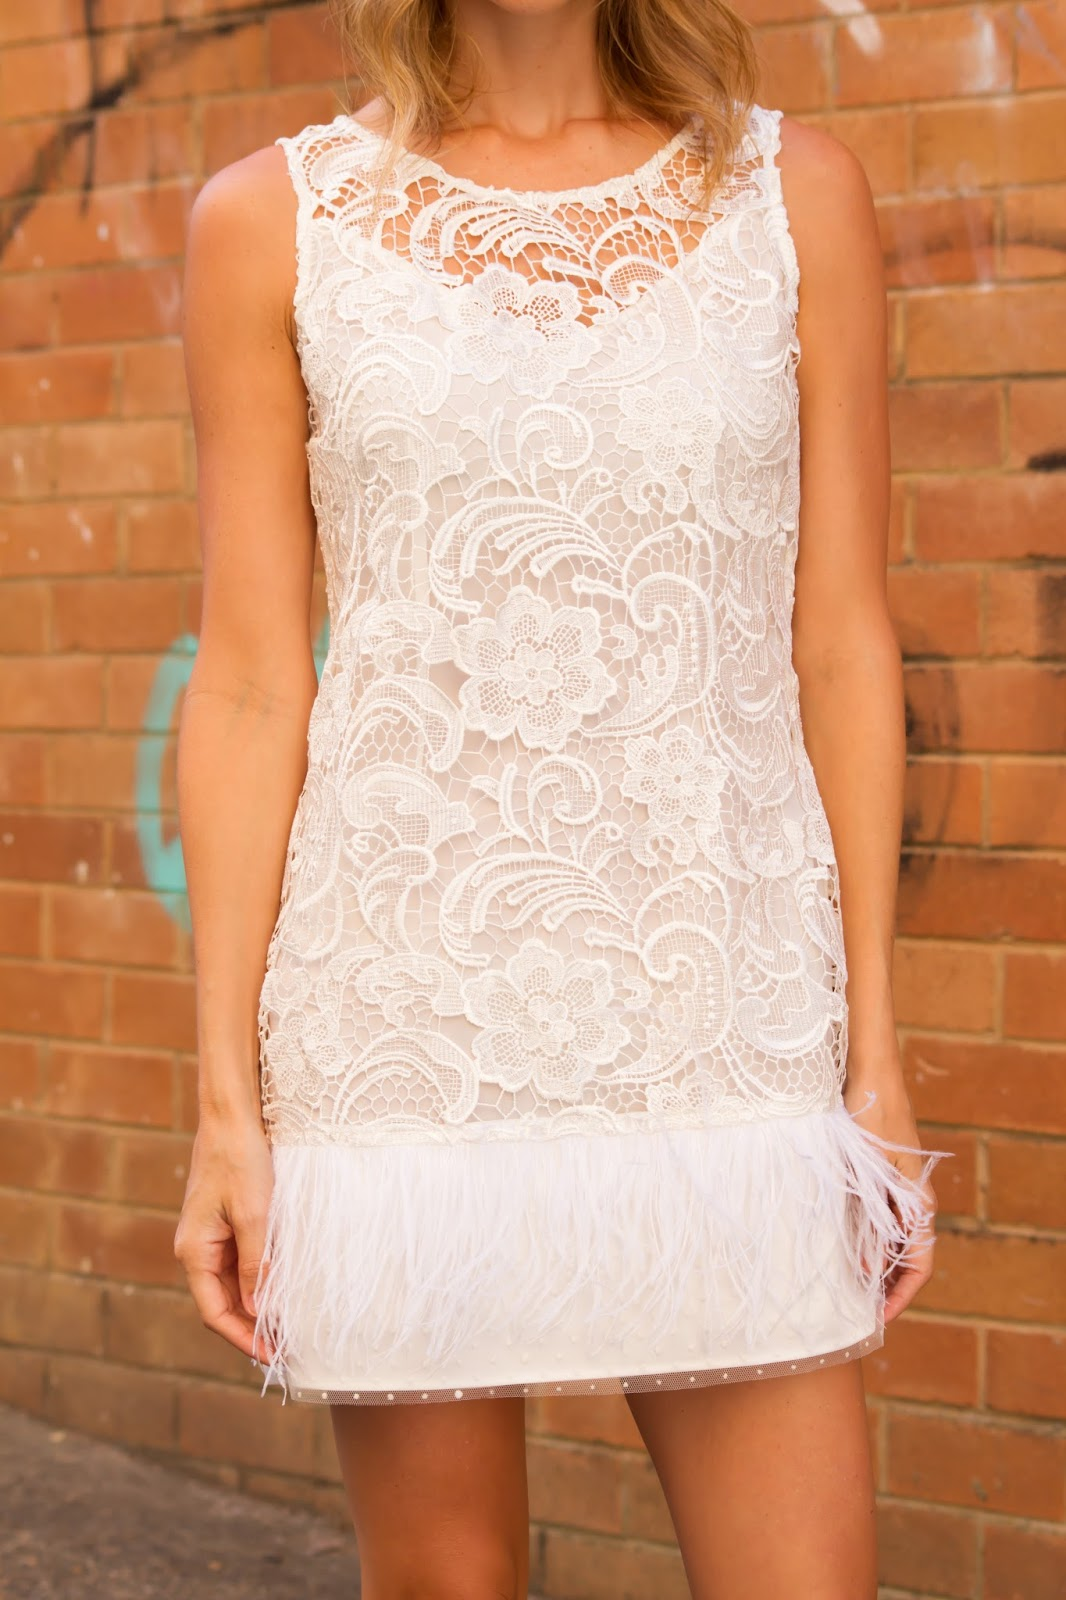 fashion blogger, Alison Hutchinson, is wearing a lace and feather dress from Dezzal